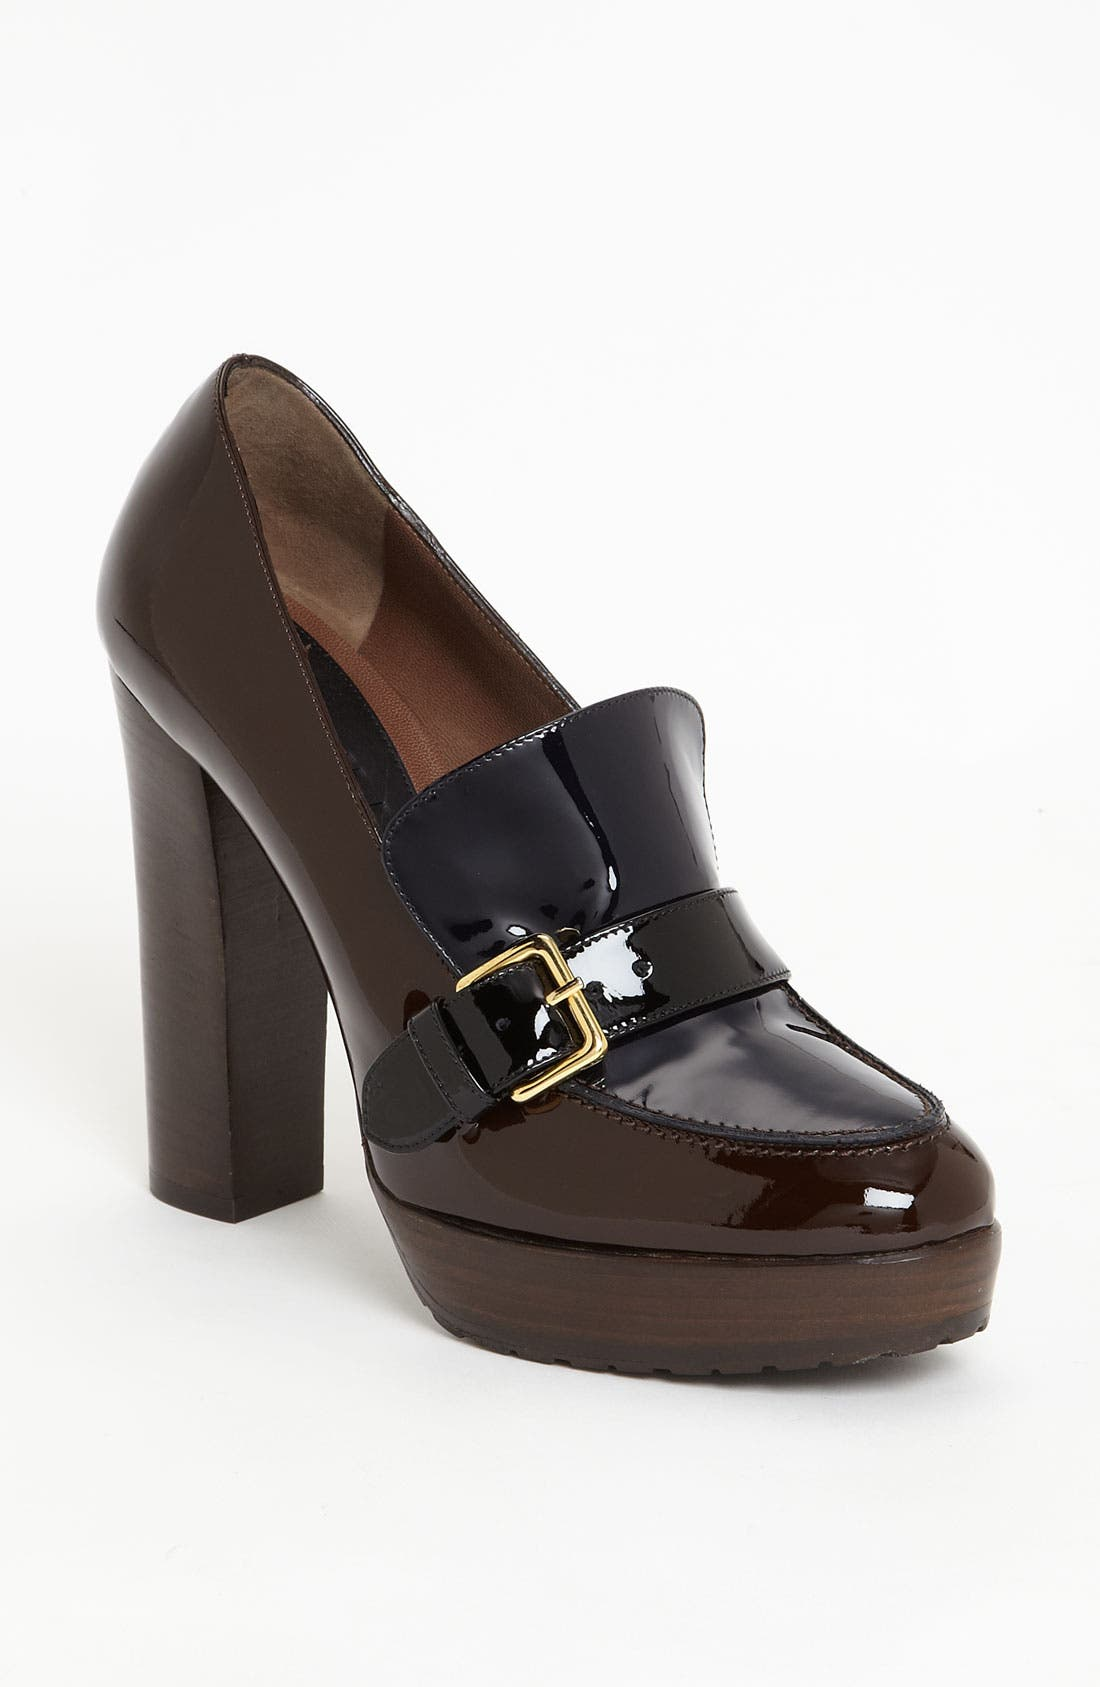 Main Image - Marni Buckle Loafer Pump